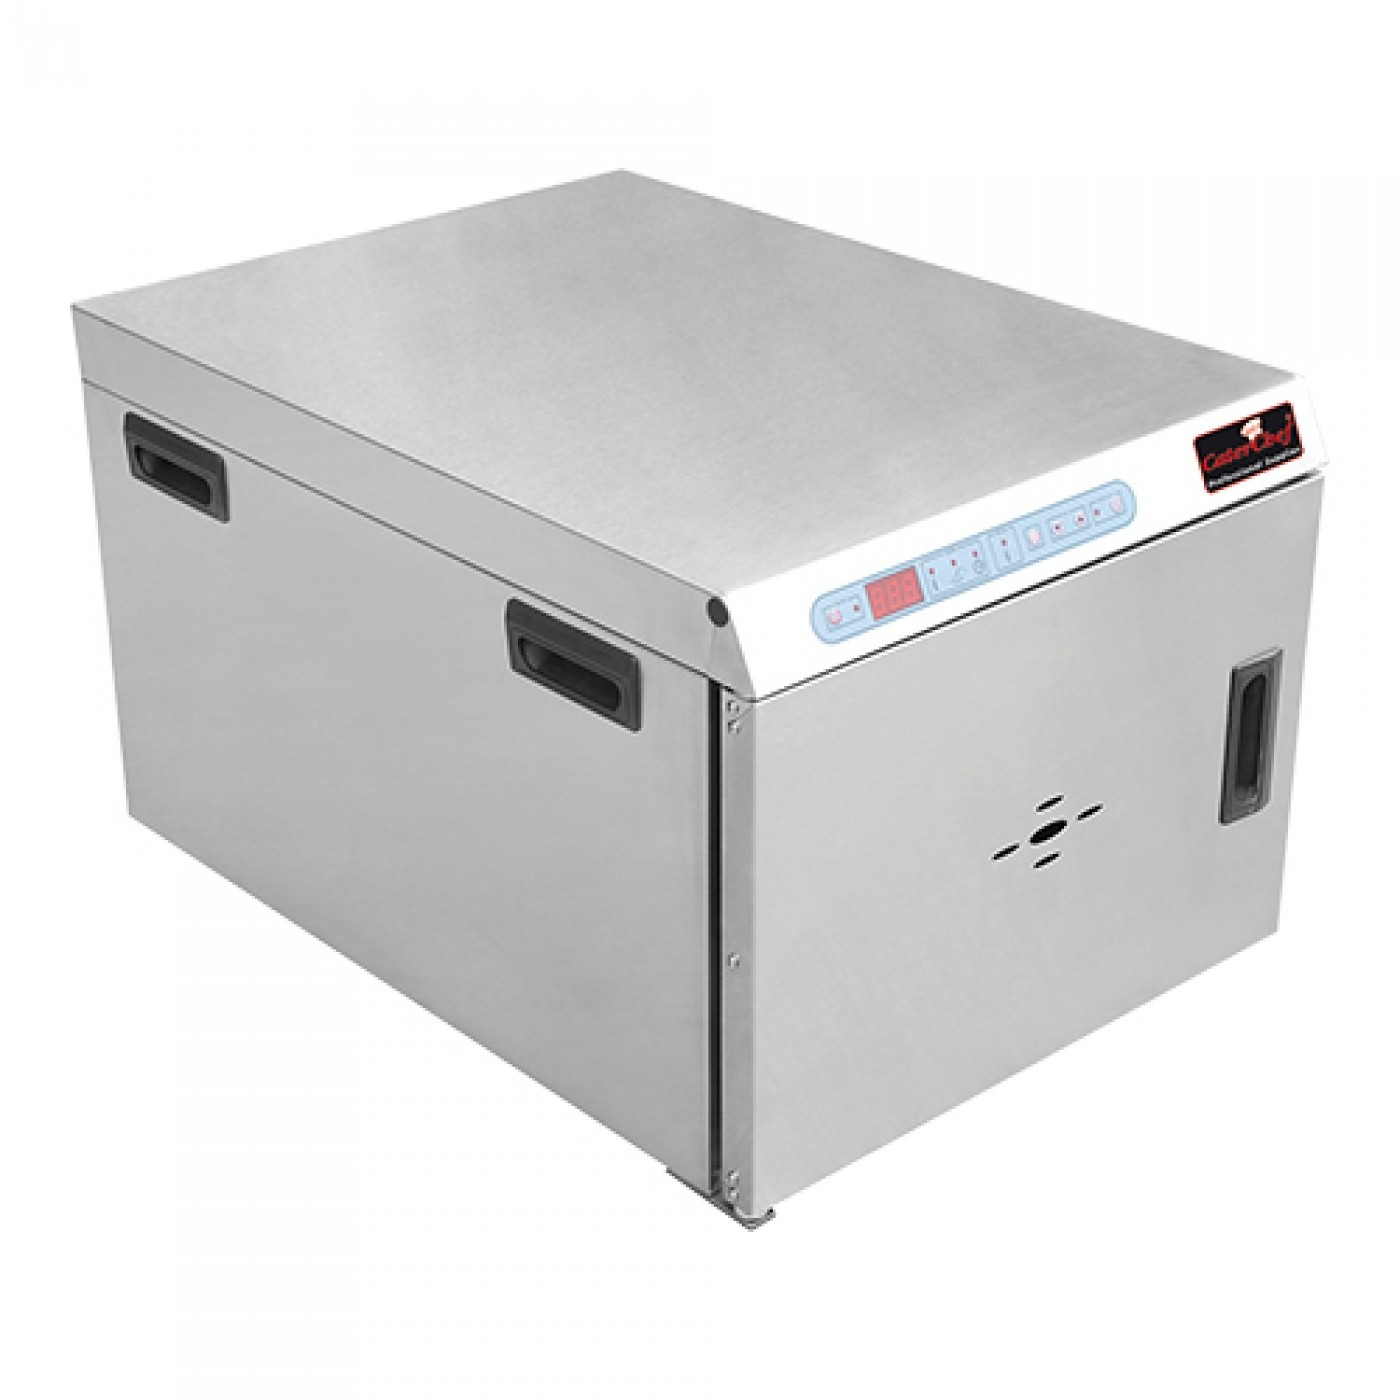 Cook & Hold oven Caterchef 688.100